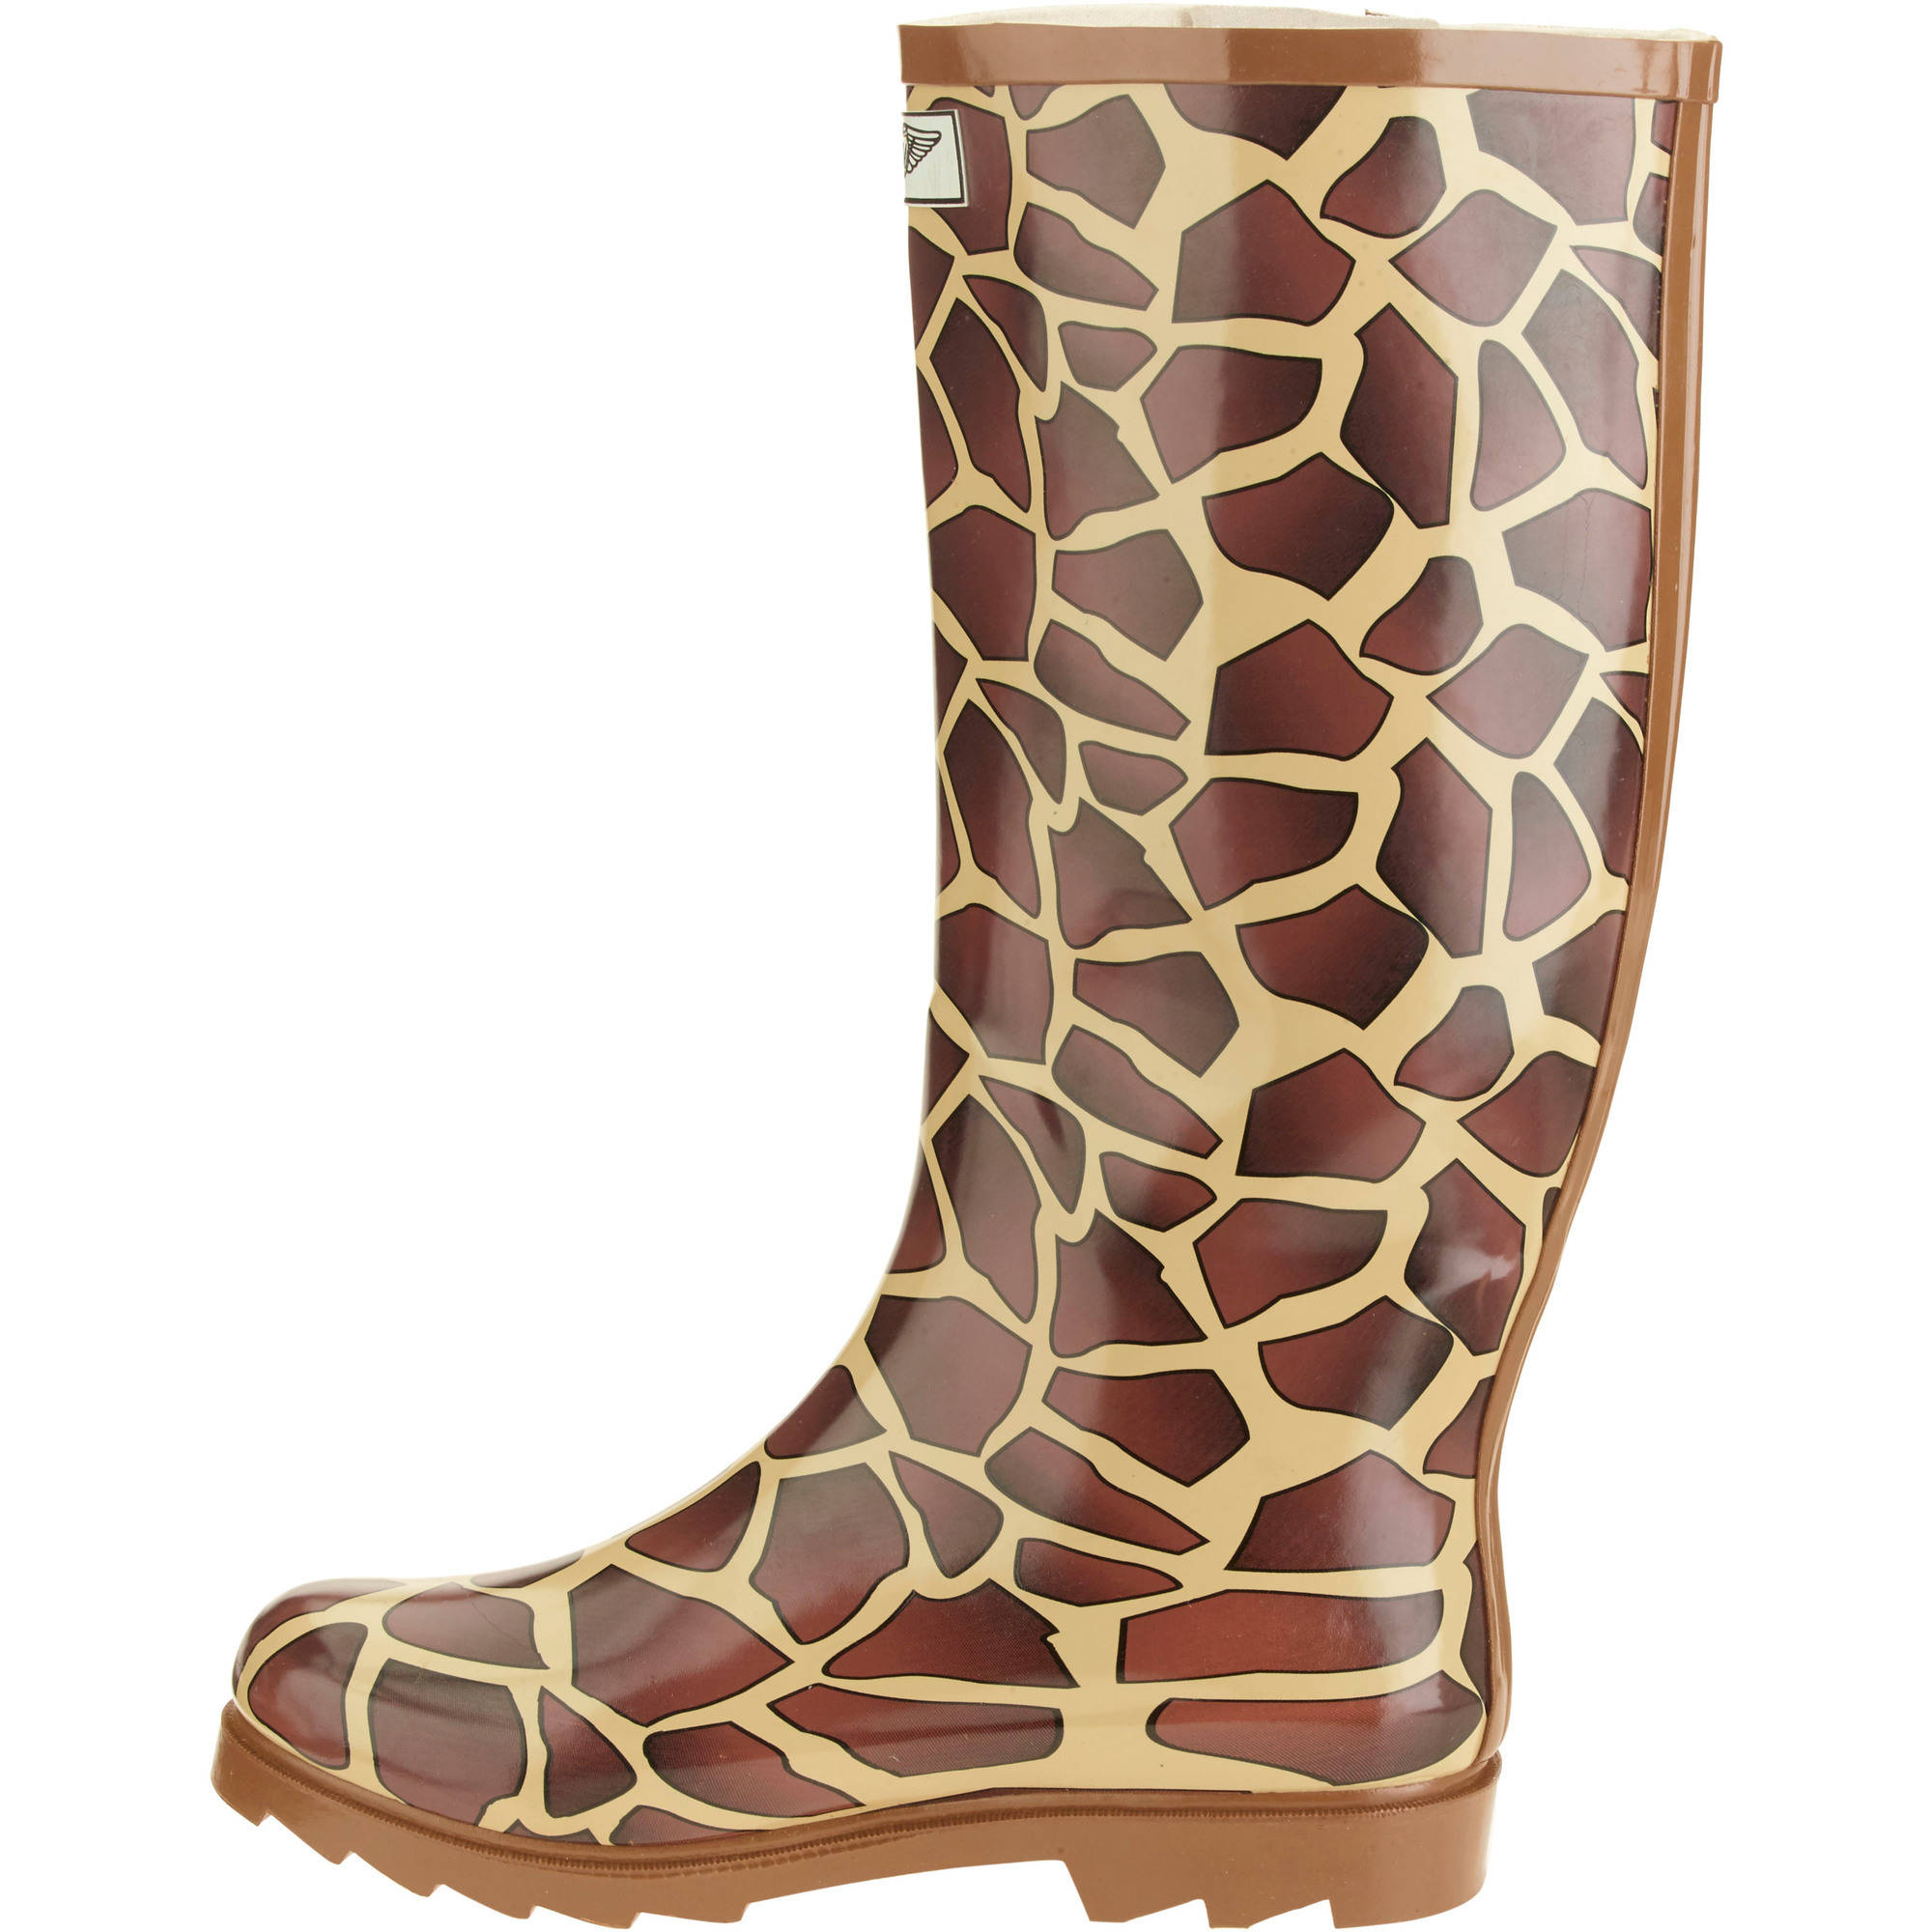 95c22a2a93d5 Giraffe Print Rubber Boots - Best Image Giraffe In The Word